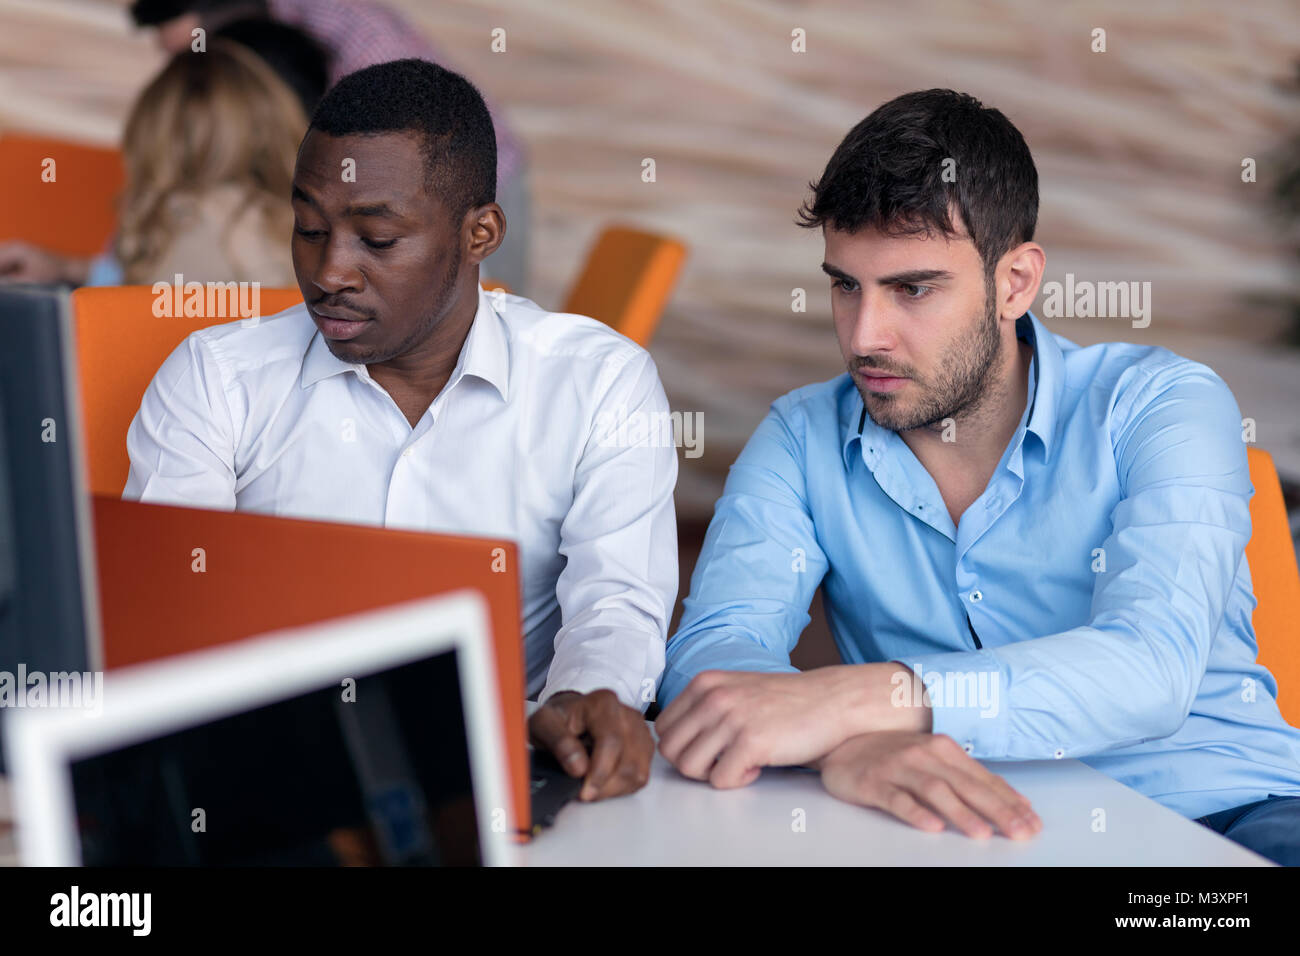 Two smart businessman using smartphone and laptop workig in office. - Stock Image